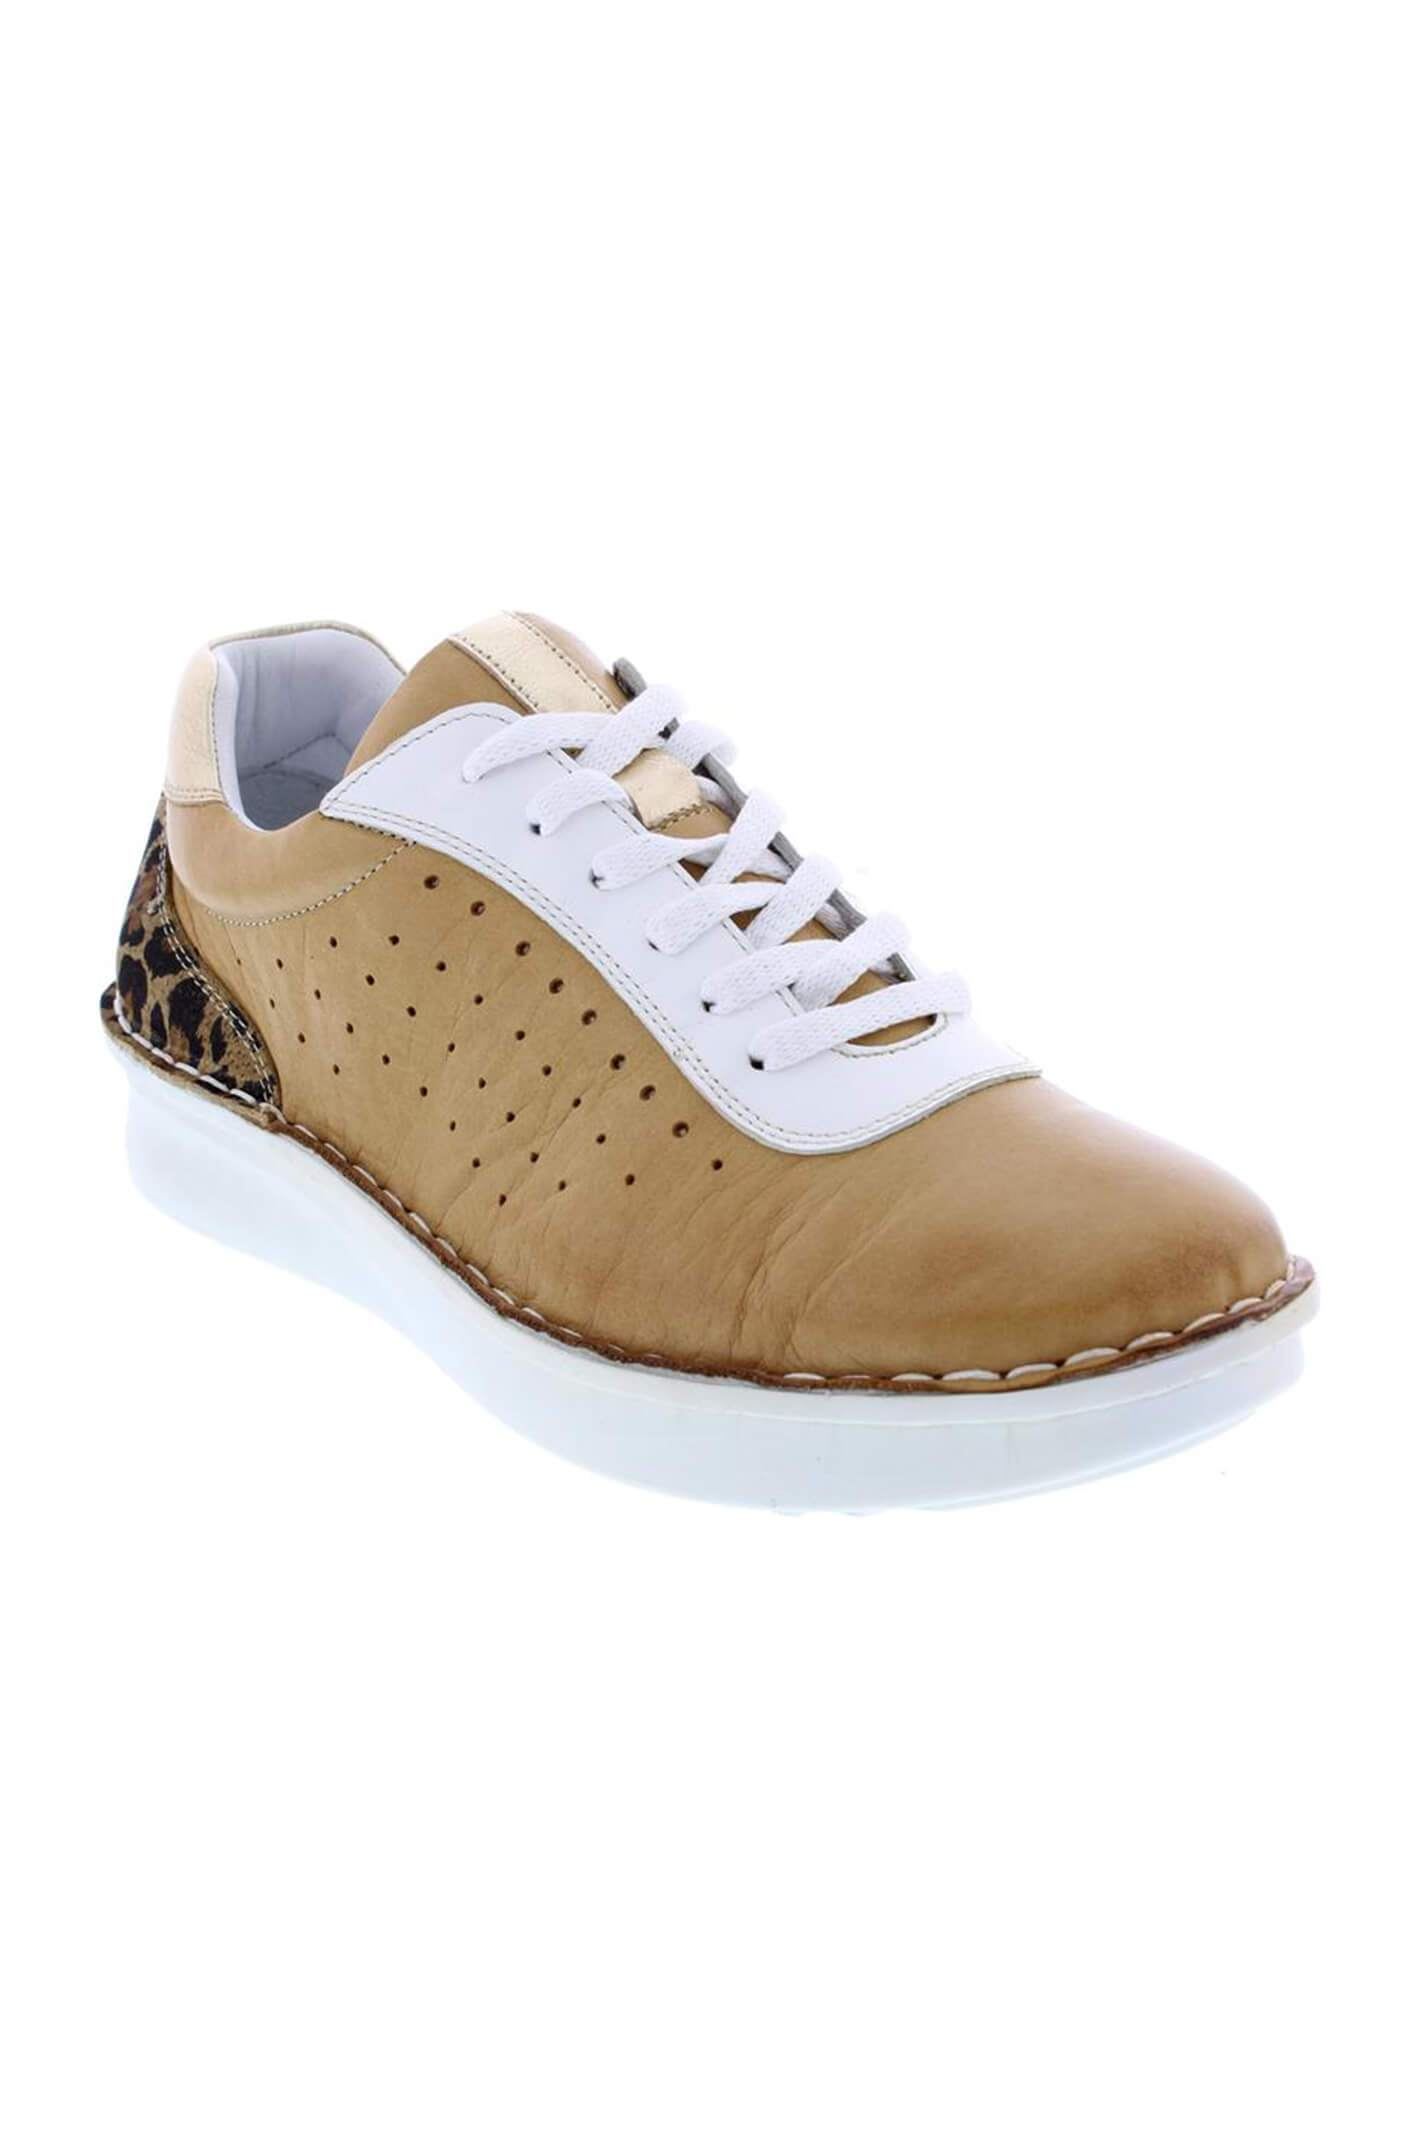 Adesso A6106 Emily Sandstone Leather Trainers 38 R